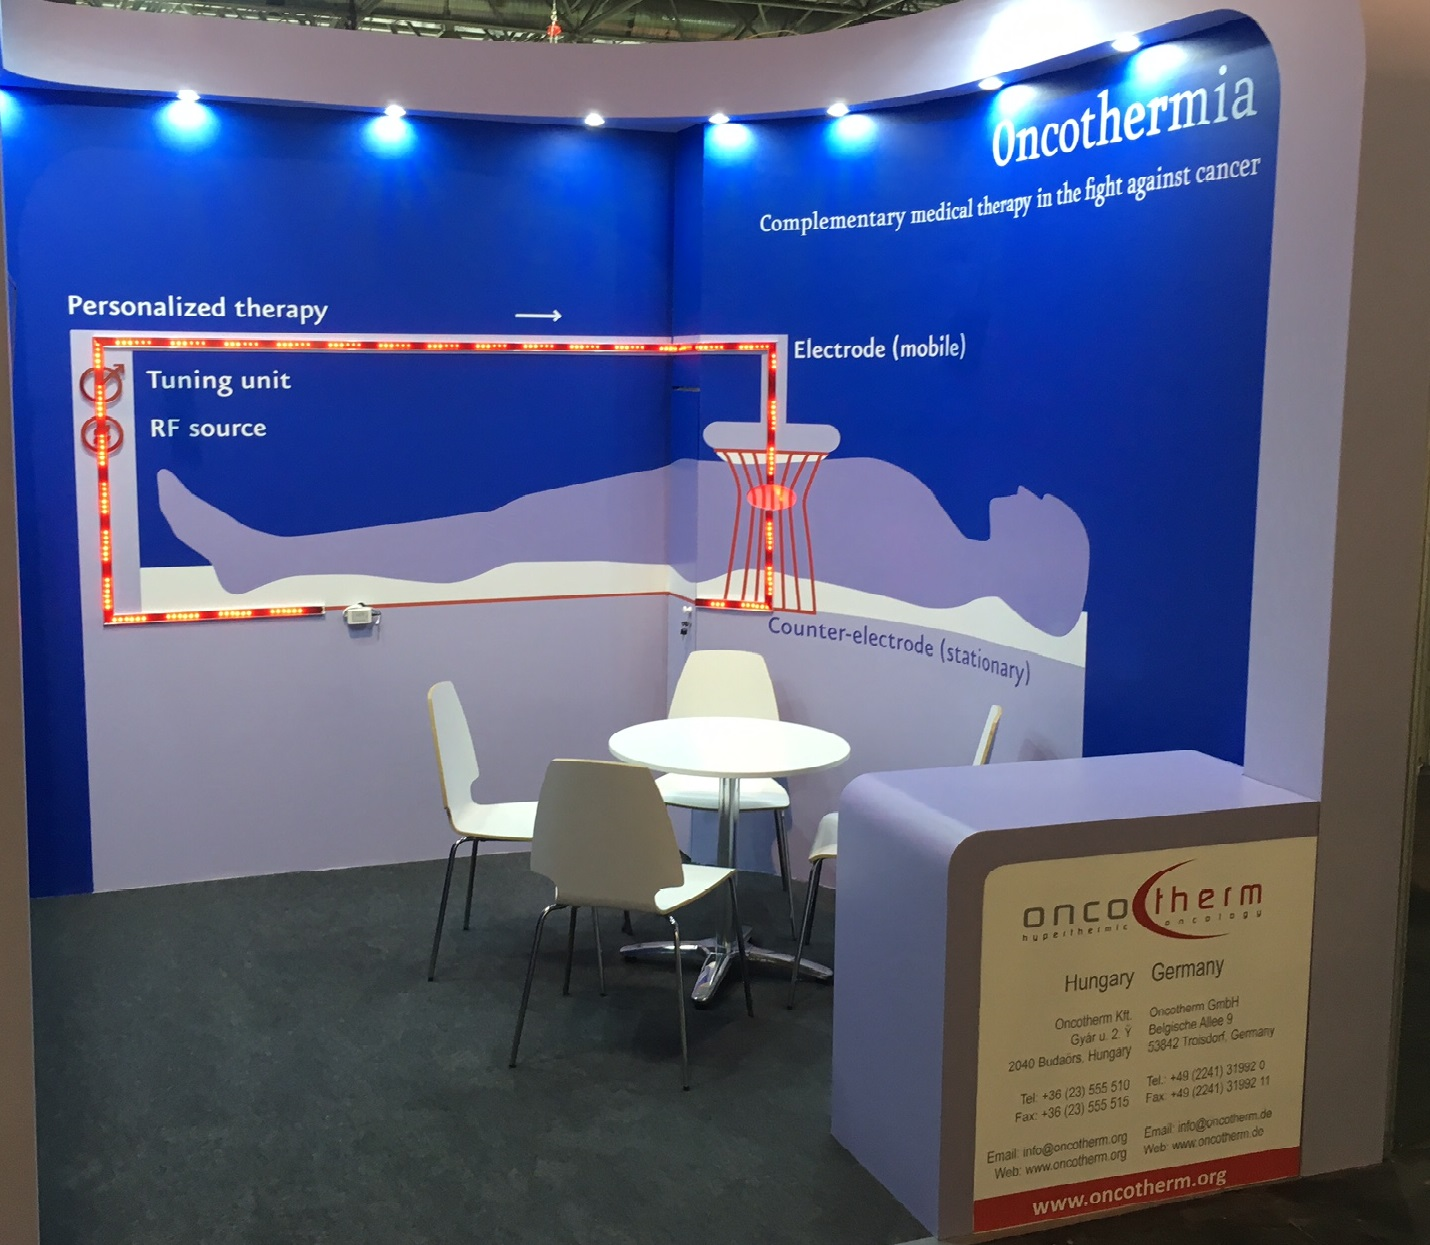 Booth of Oncotherm at ESTRO